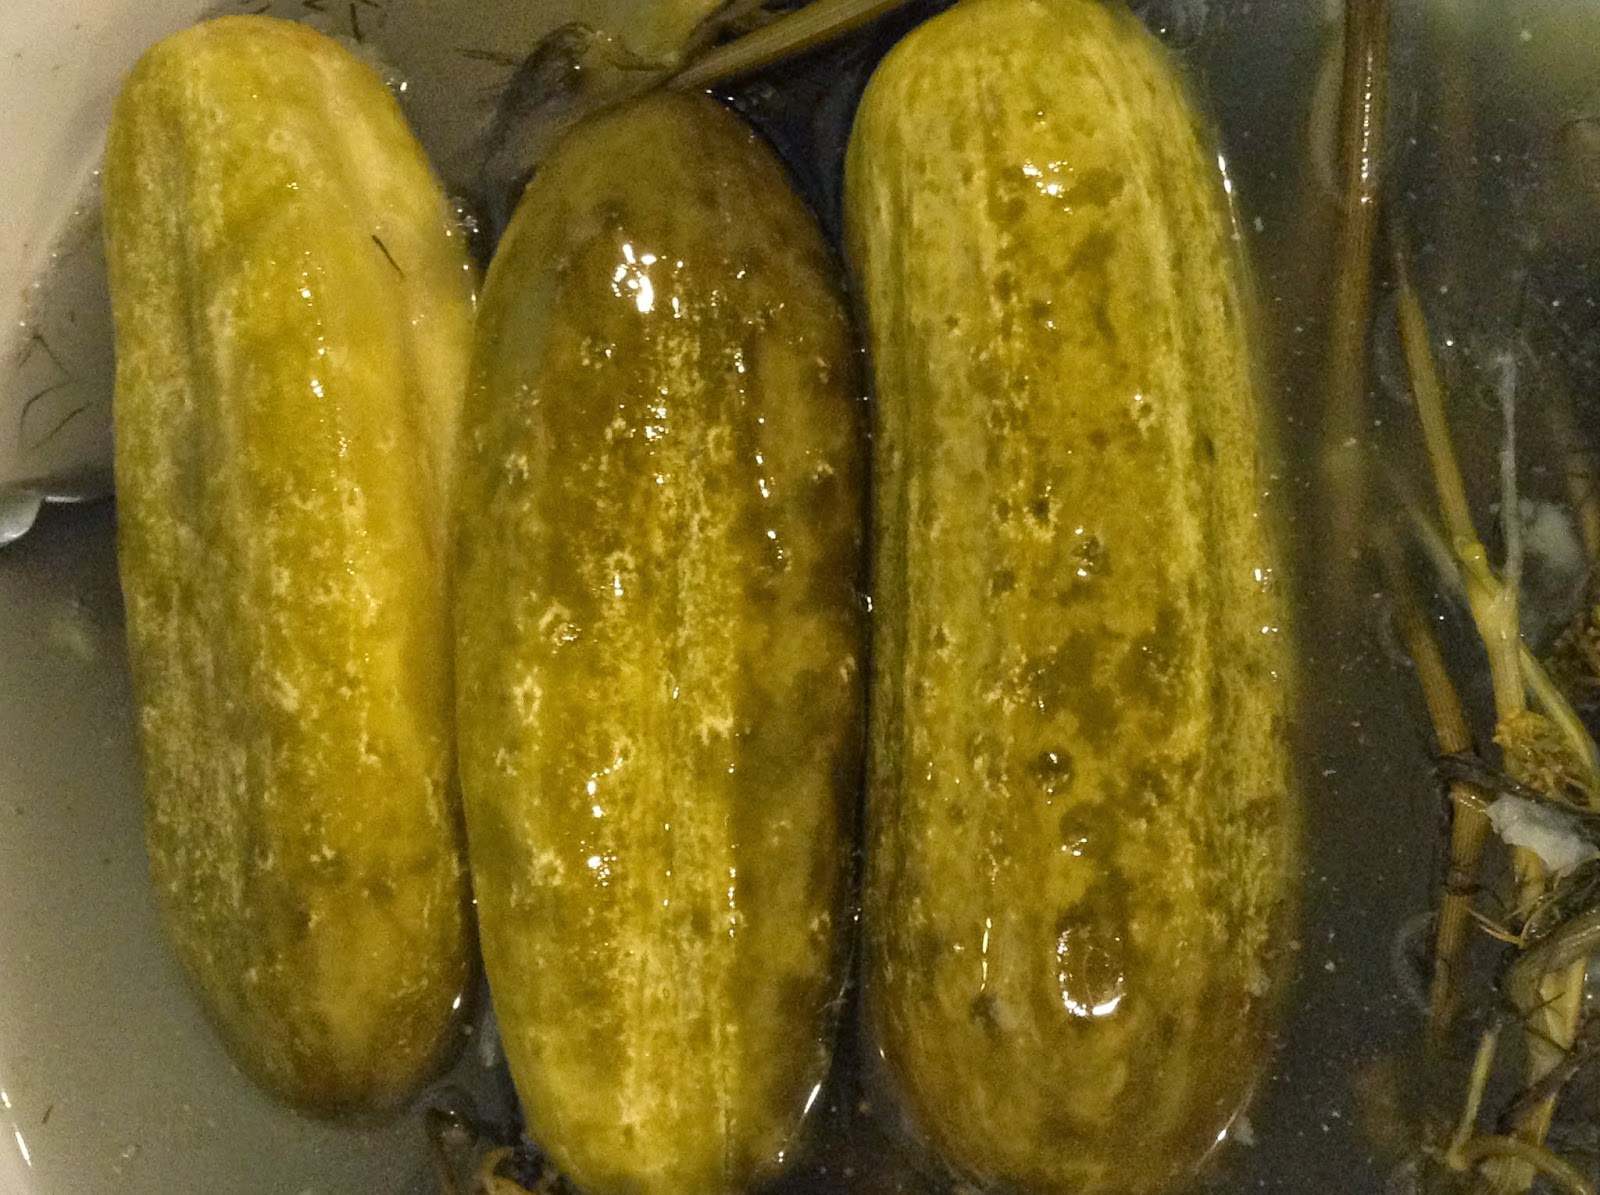 Pete's pickles